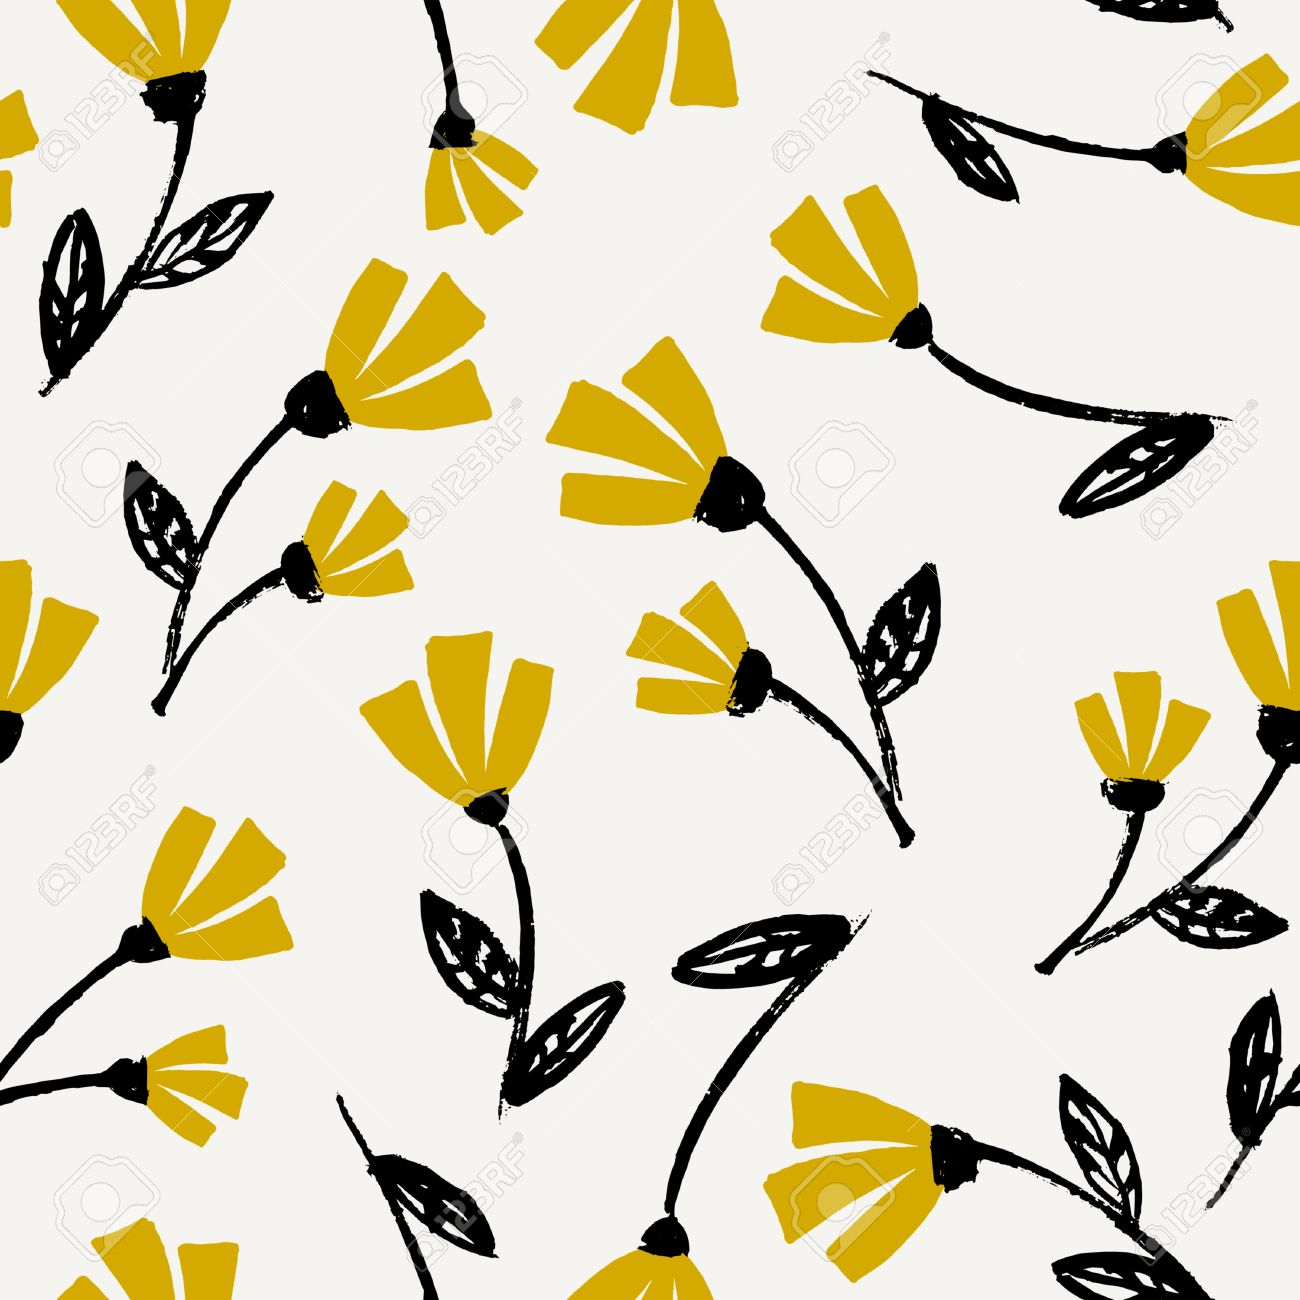 Seamless Repeat Flowers Pattern In Black Mustard Yellow And